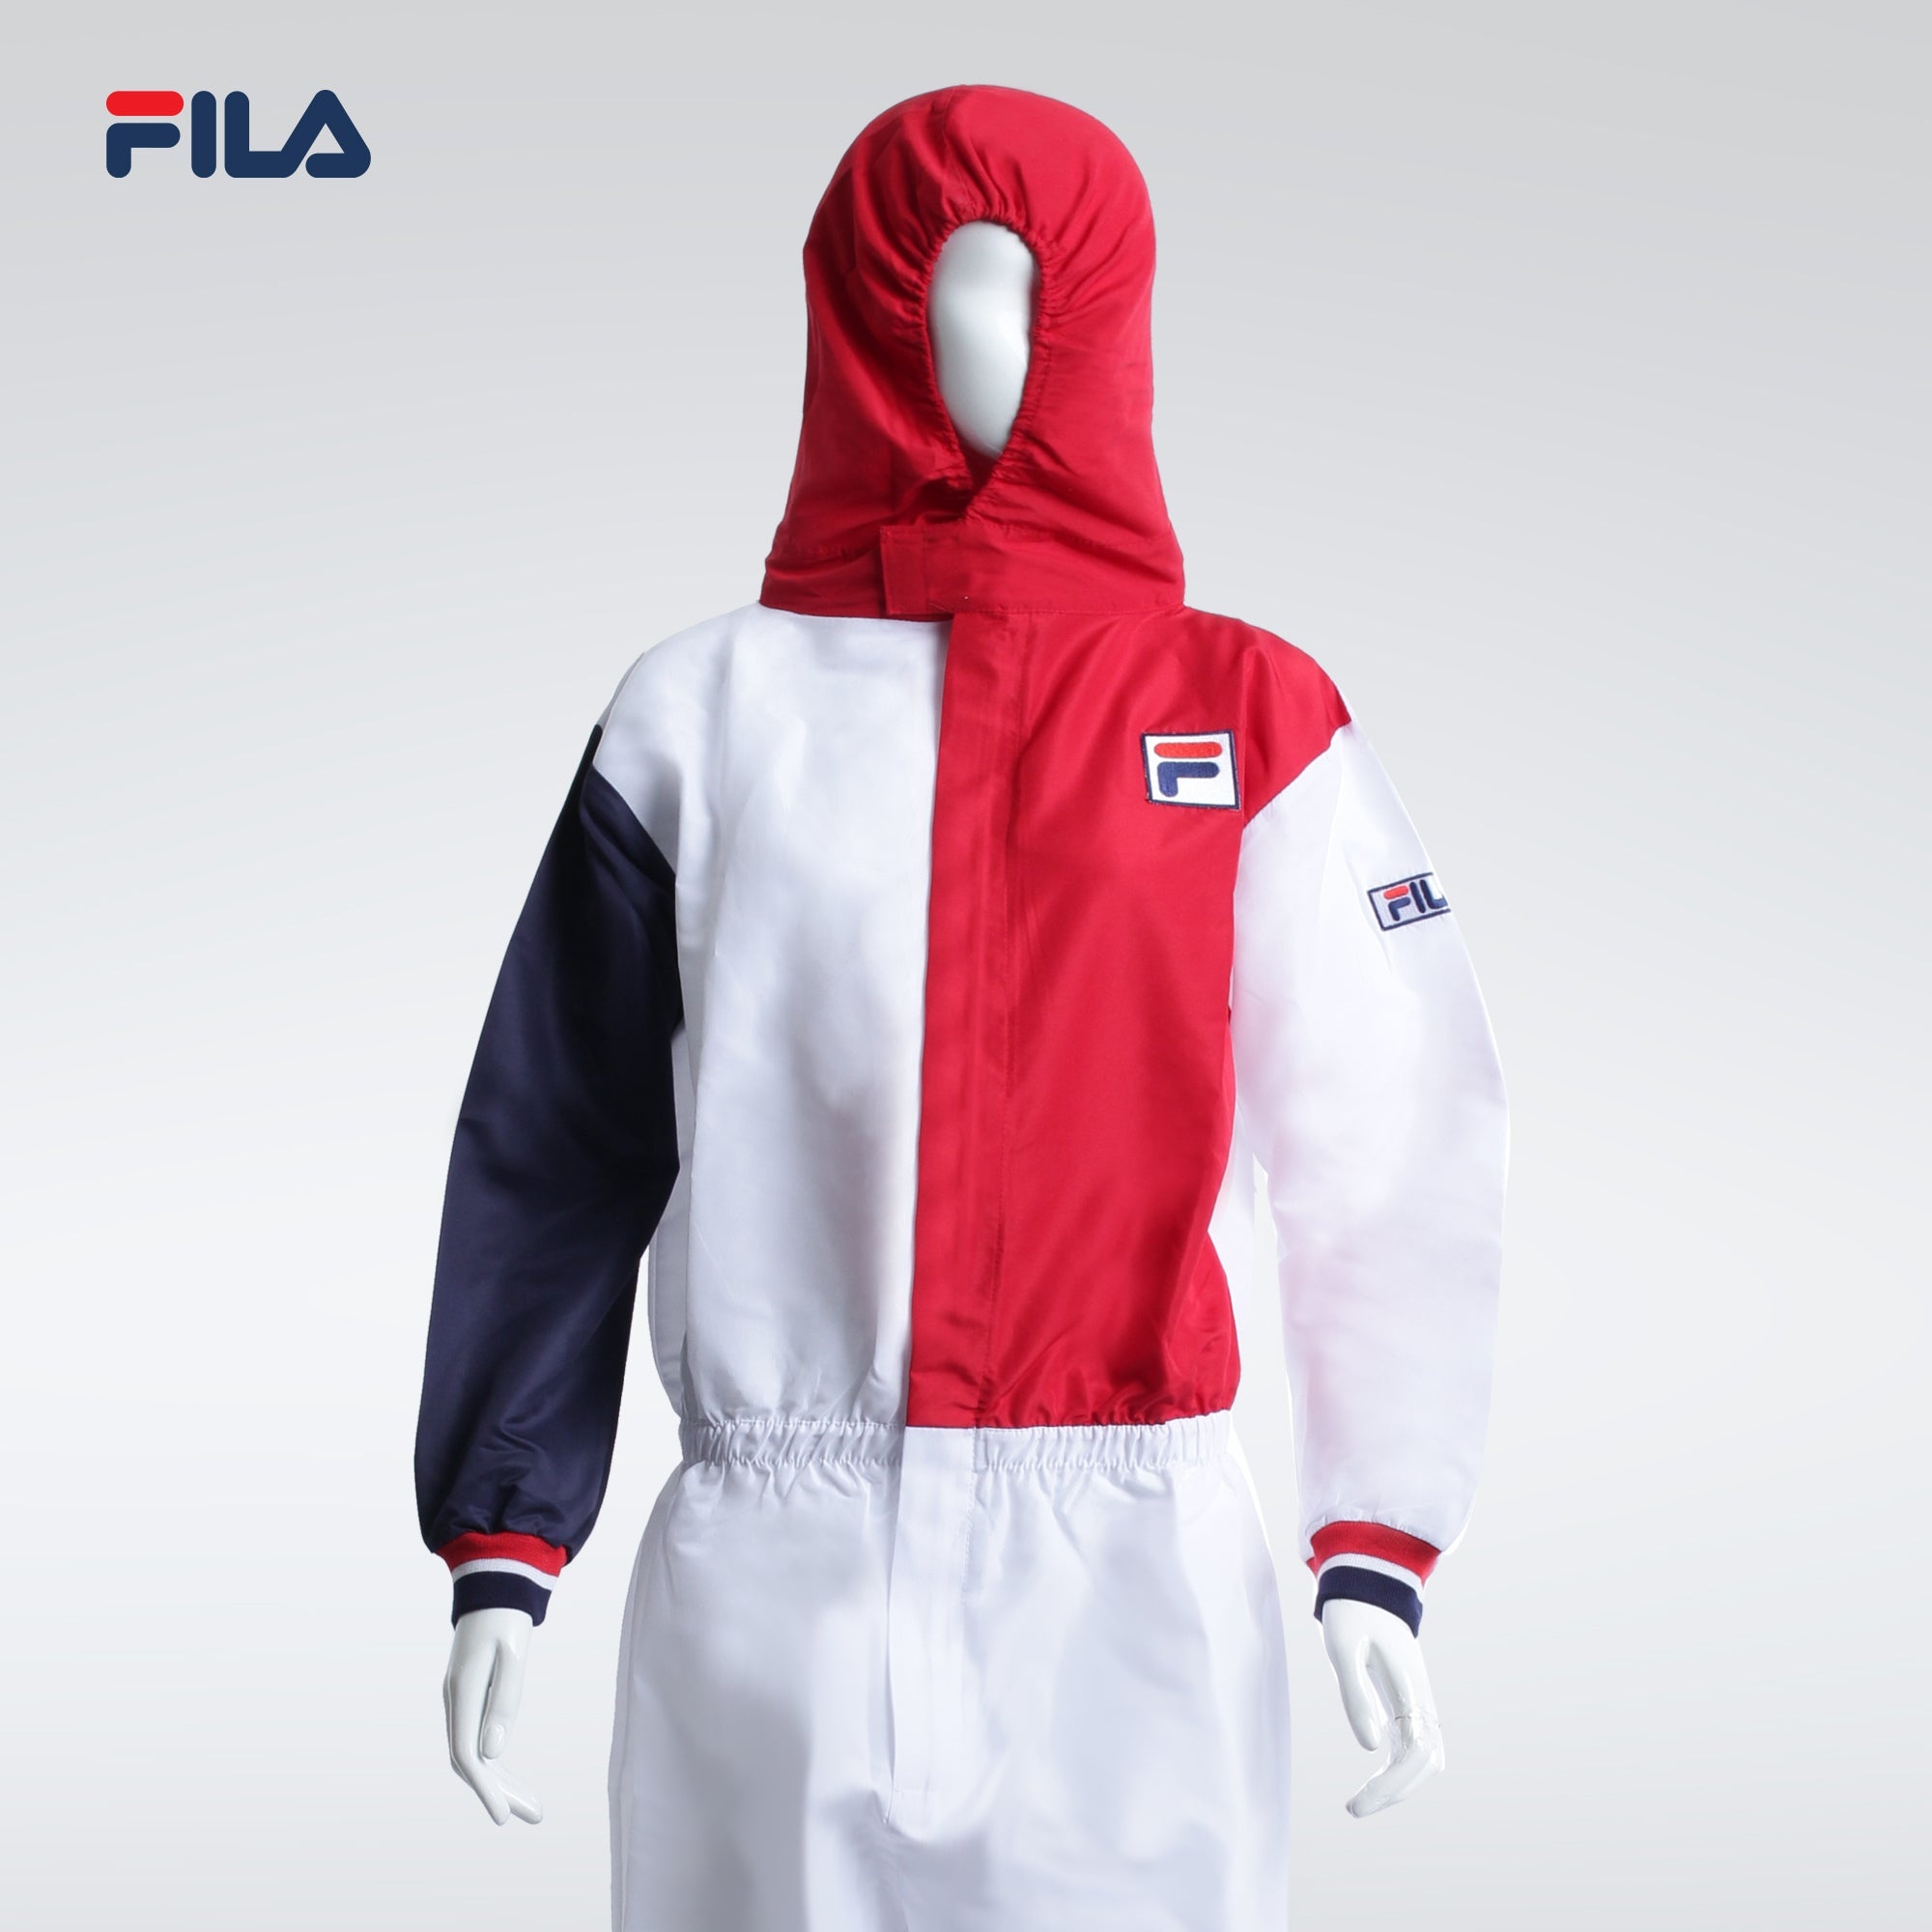 Fila Fashionable Unisex PPE Red and White